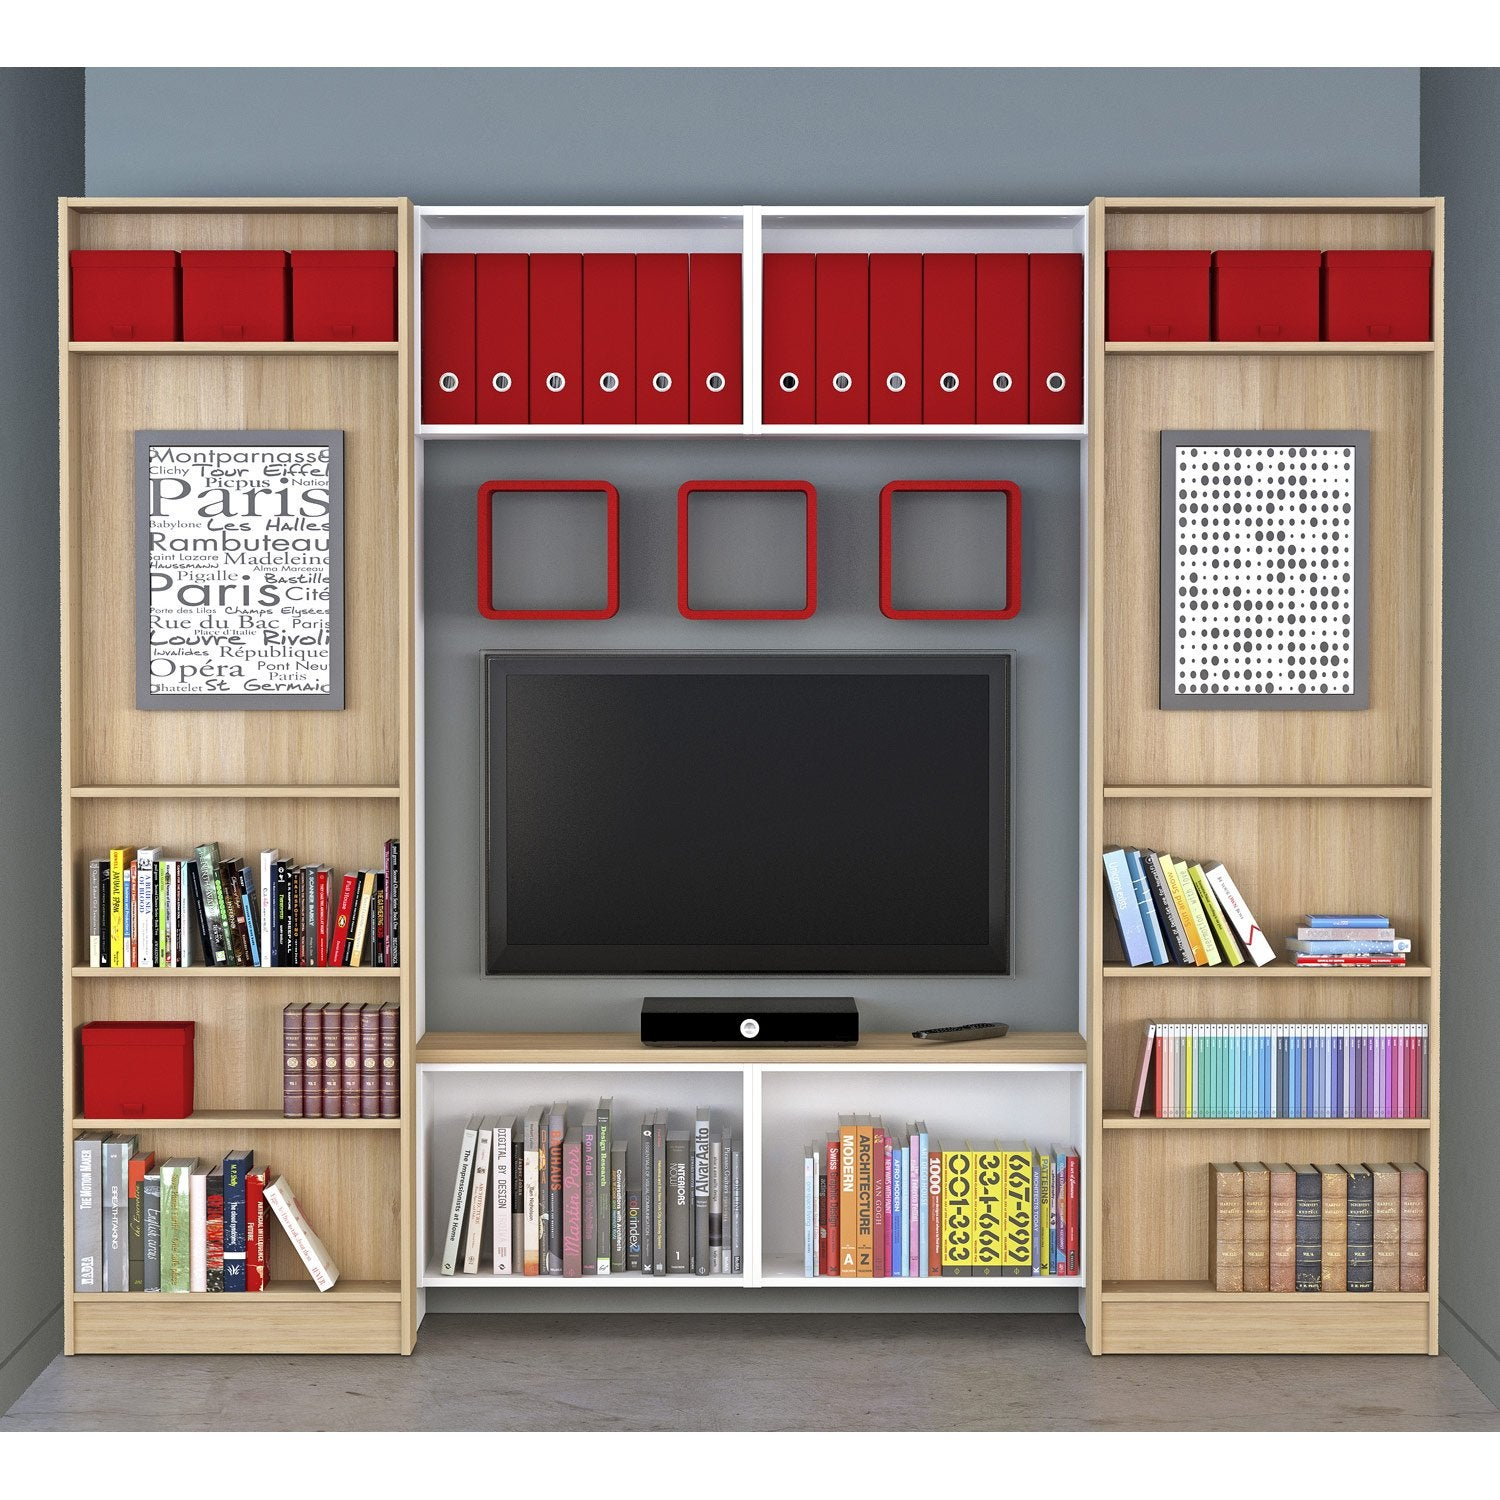 Meuble tv spaceo home d cor ch ne leroy merlin - Meuble bibliotheque leroy merlin ...